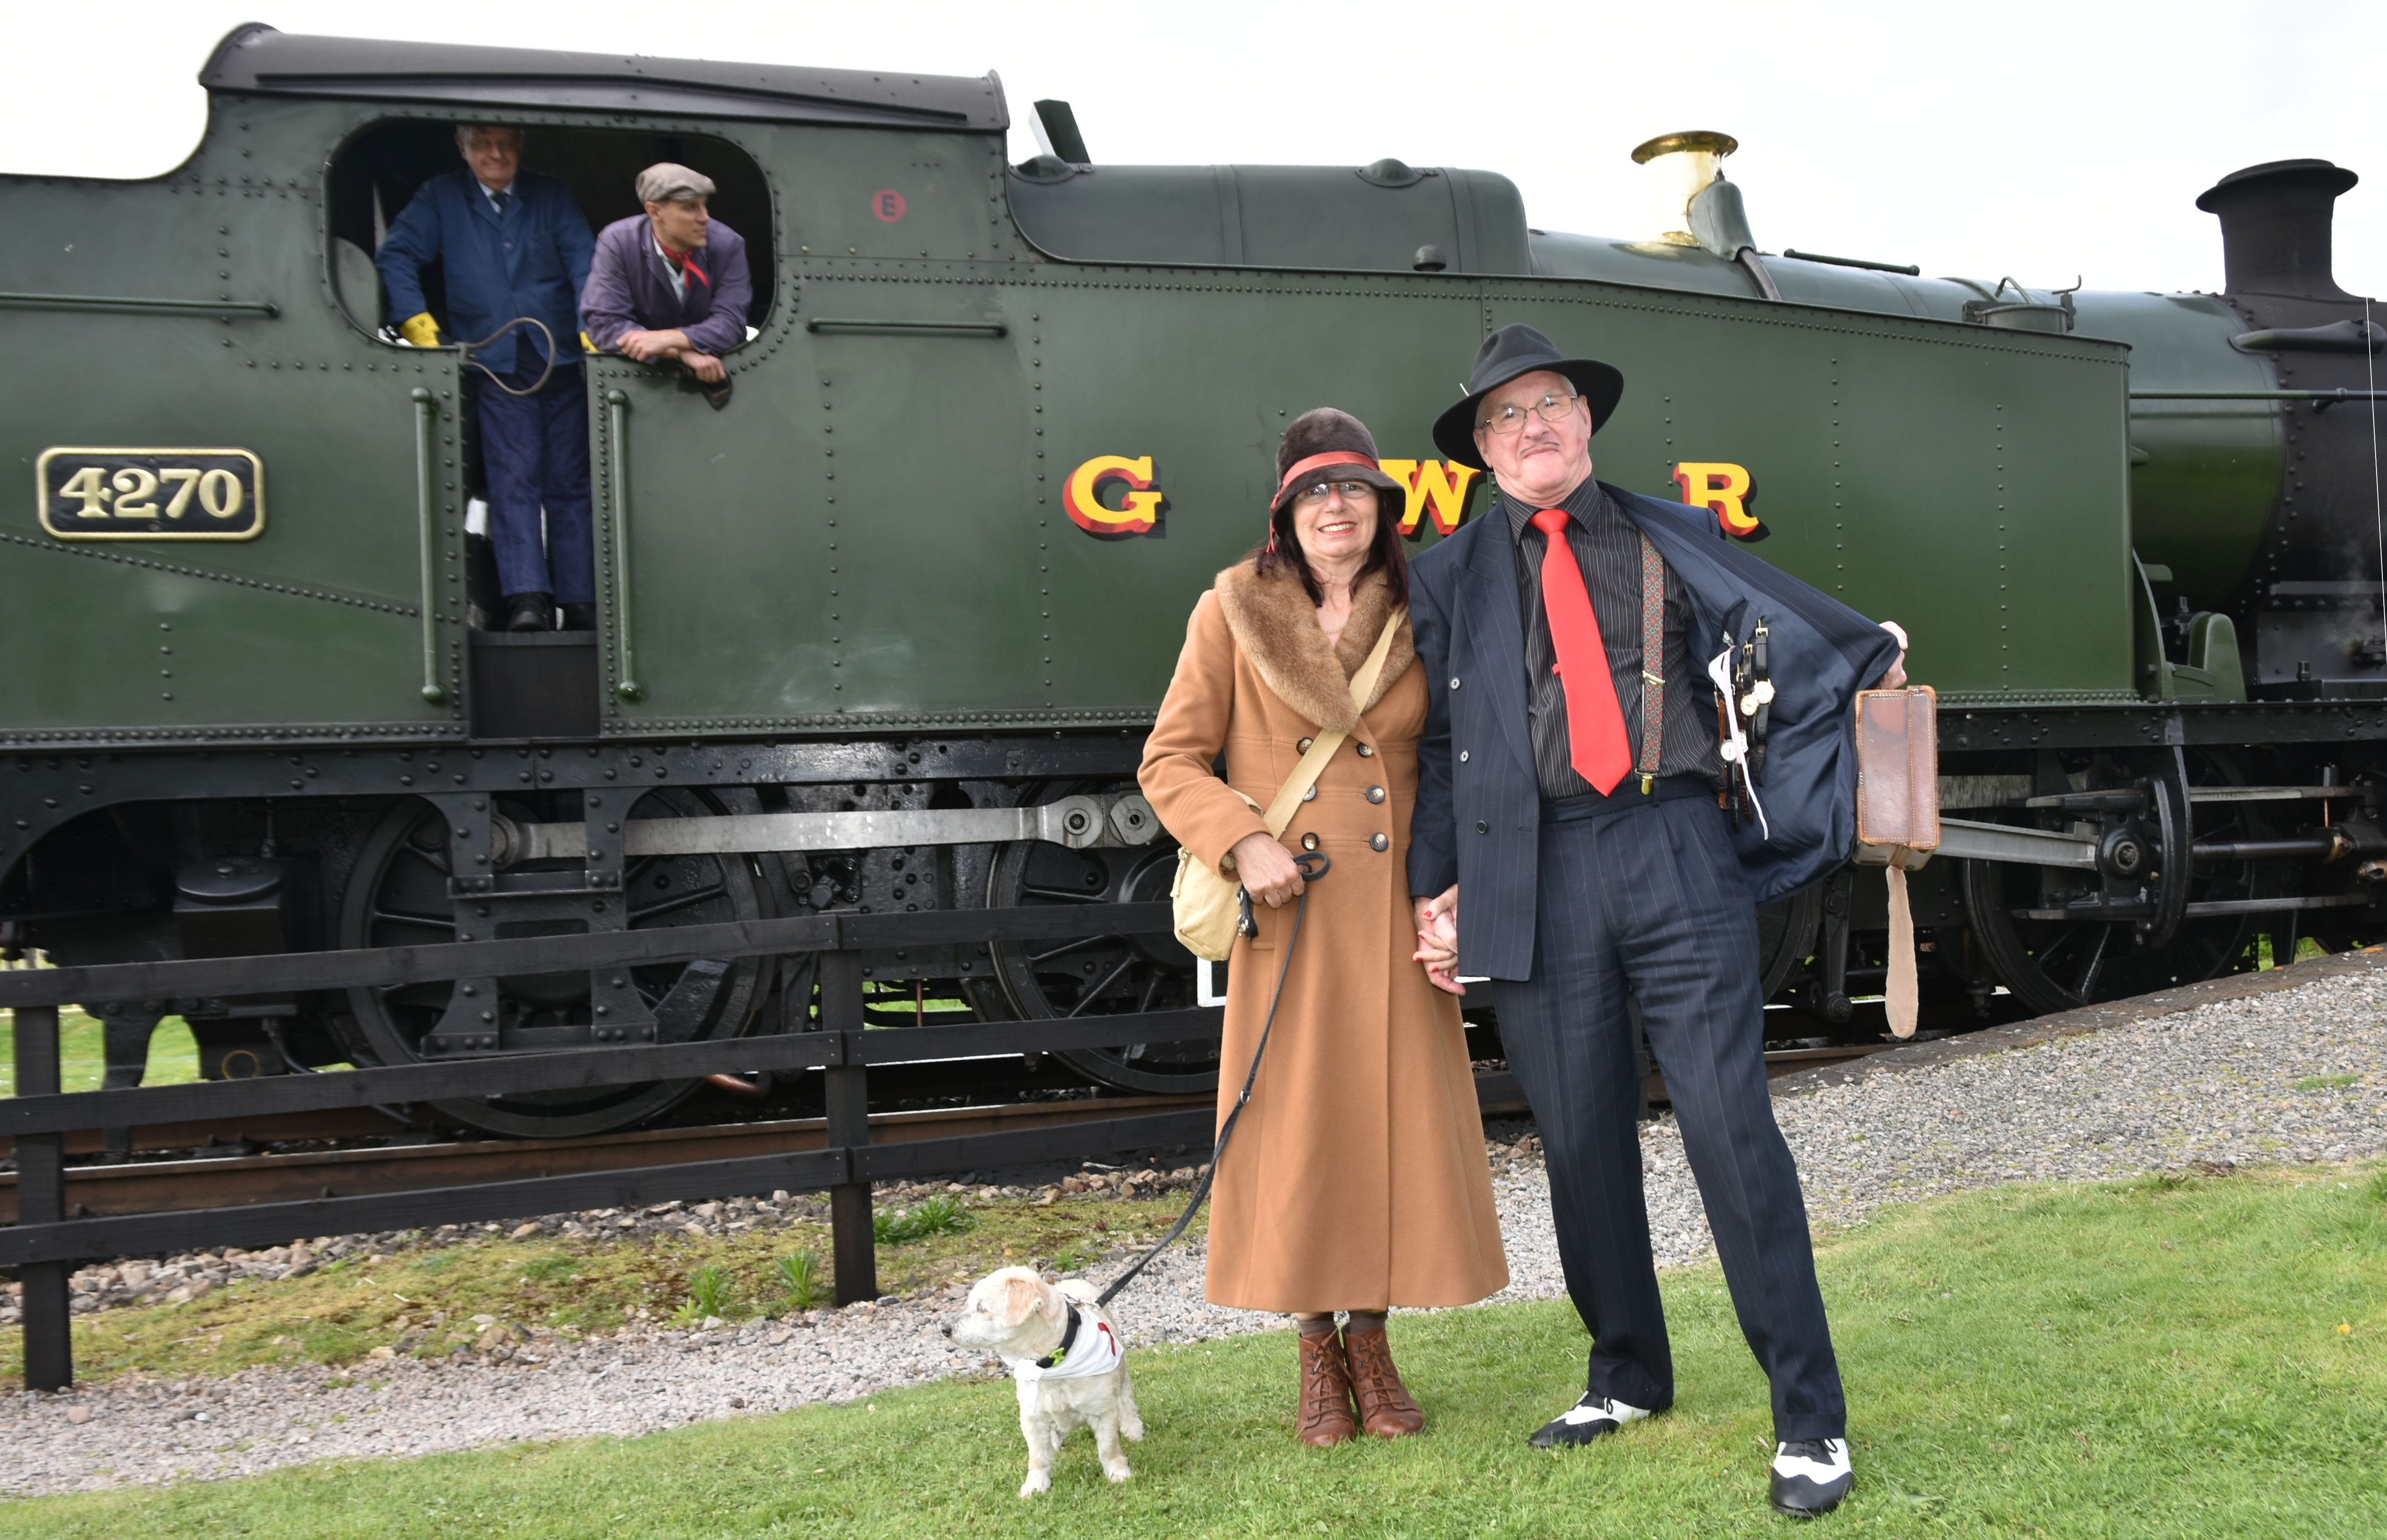 A scene from last year's Wartime in the Cotswolds event.